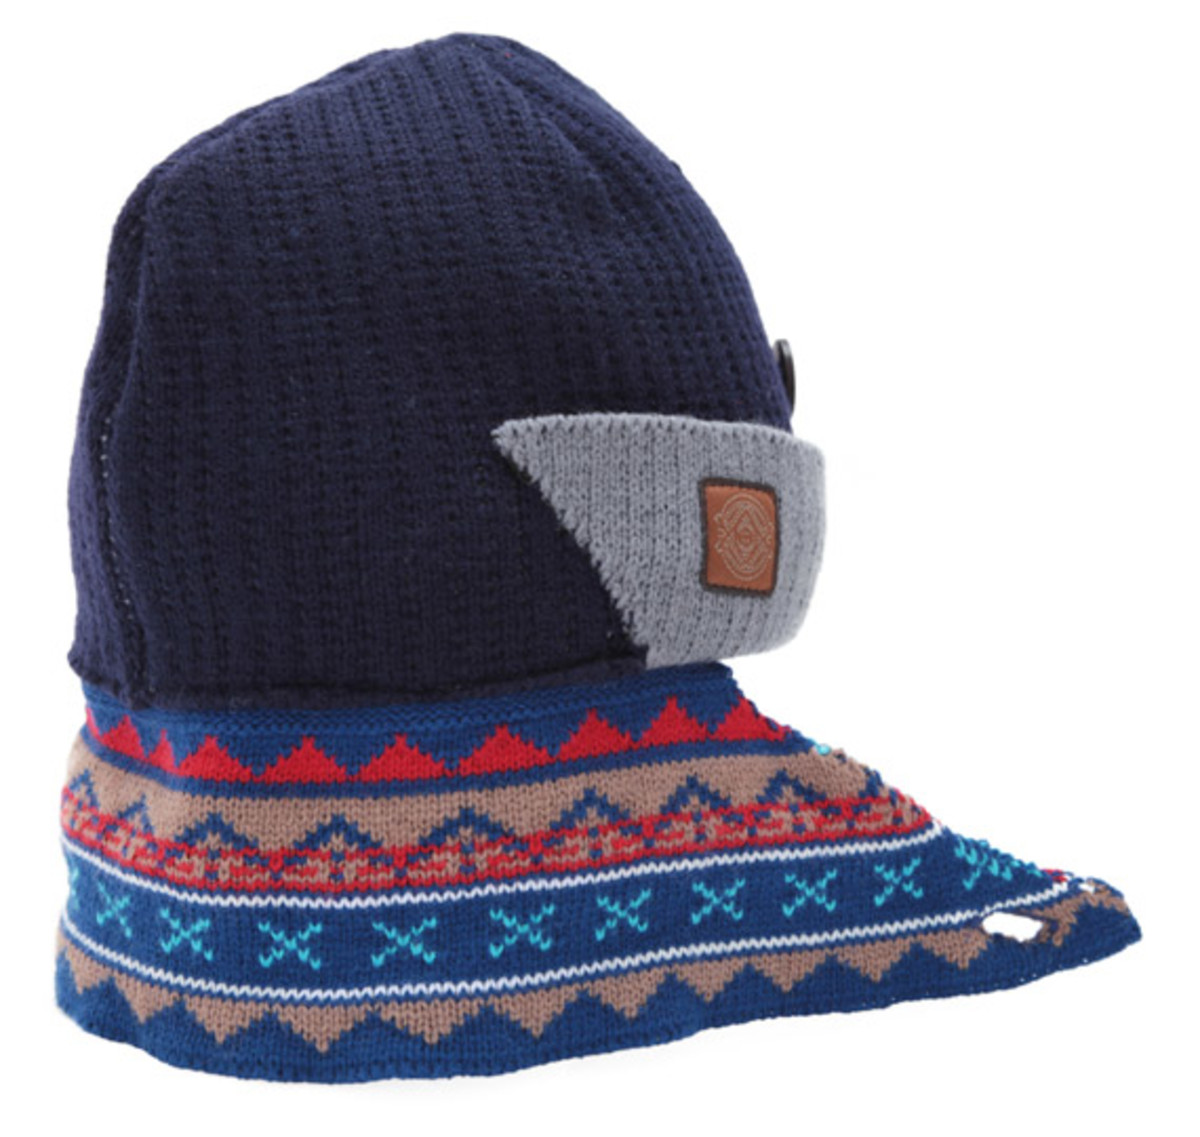 clot-tribesmen-fall-winter-2012-collection-series-2-hats-05